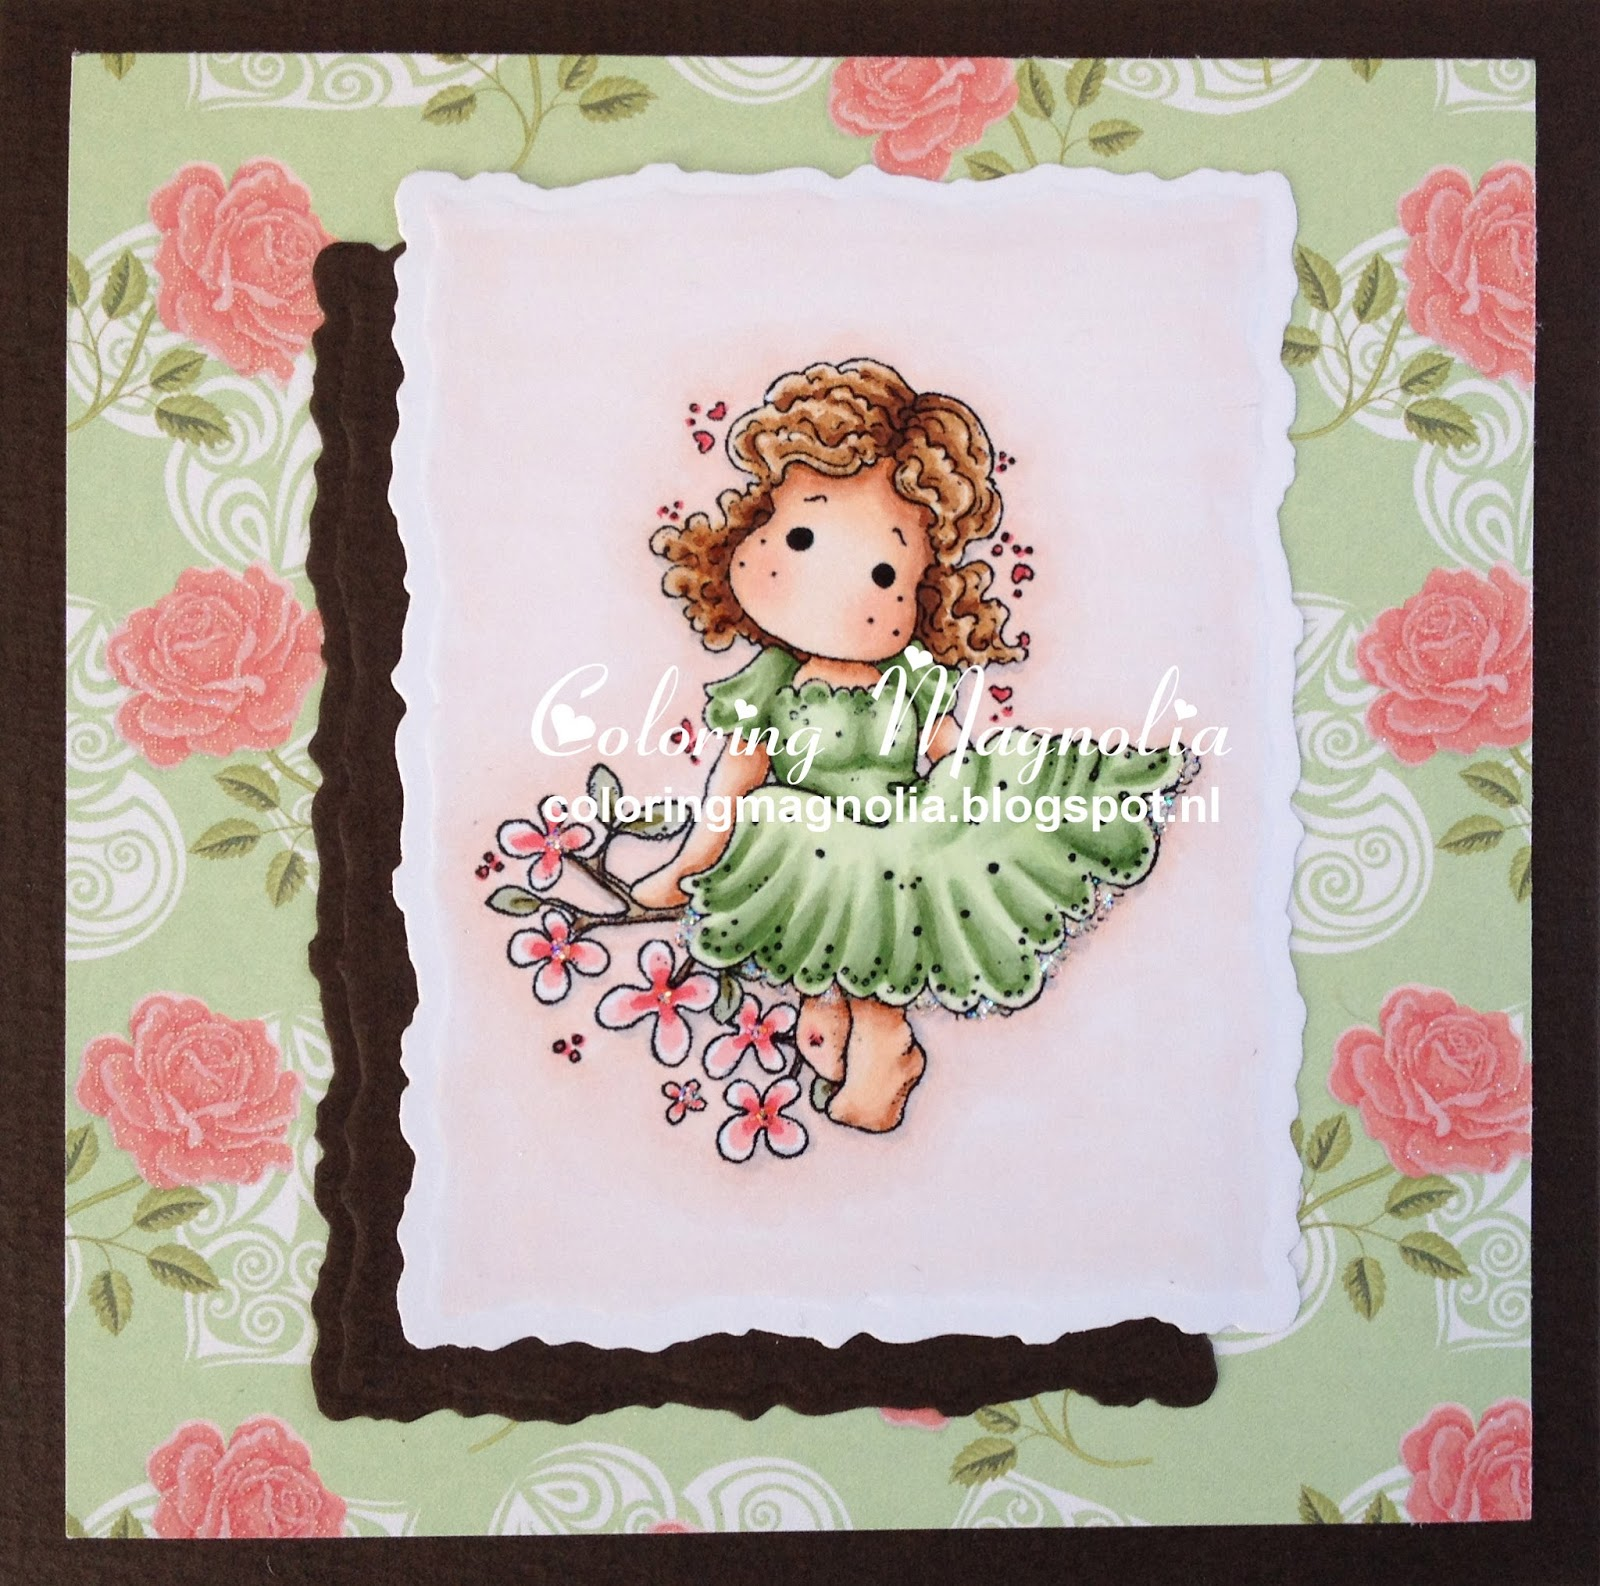 Coloring Magnolia Stamp 2013 Special Moments Collection - Delightfull Tilda - 2011 Sweet Rainbow Collection - Magnolia Branch